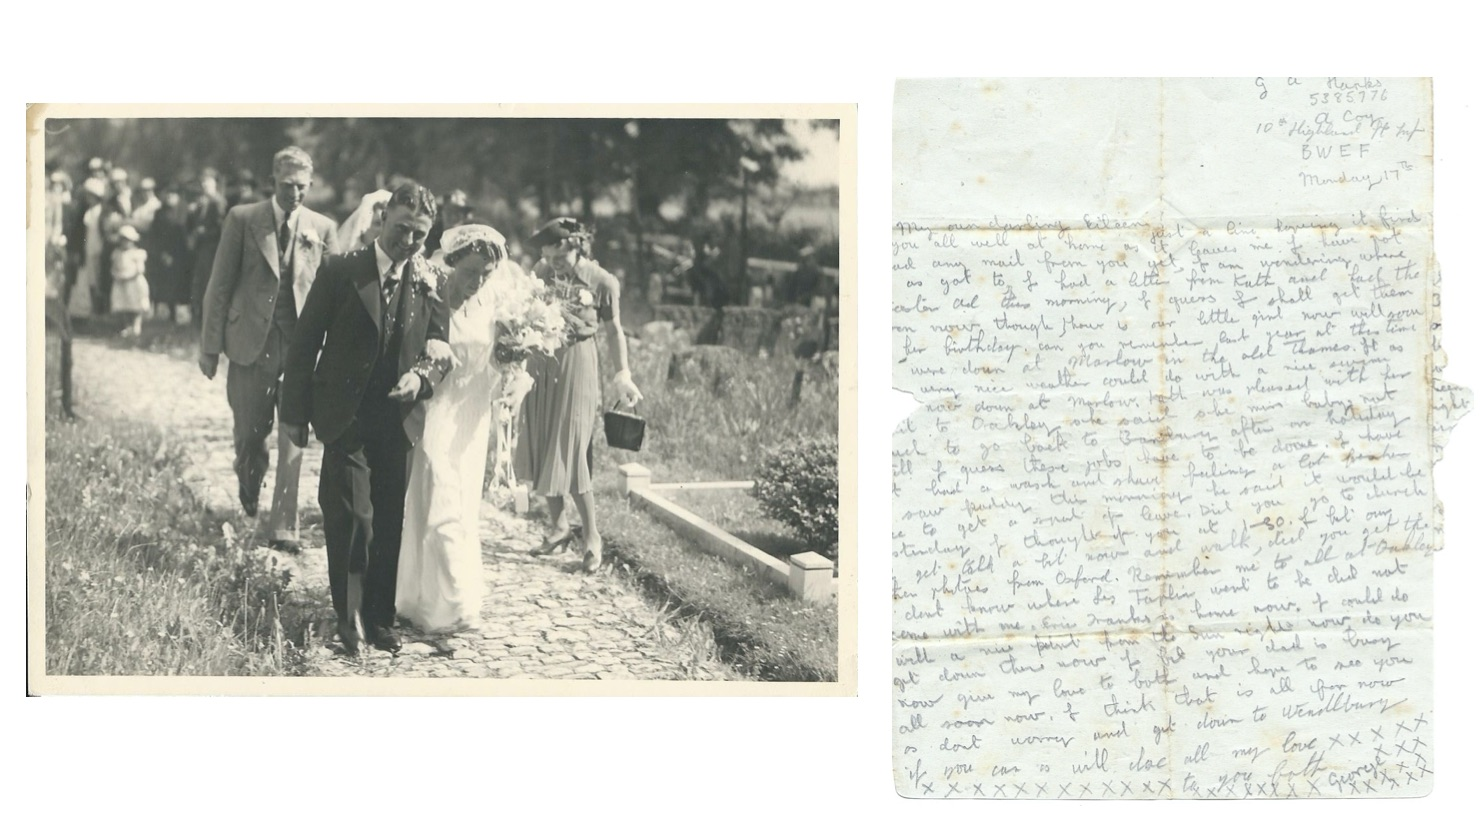 George and Hilda's wedding day in May 1940 and one of the many love letters sent by George in summer 1944.